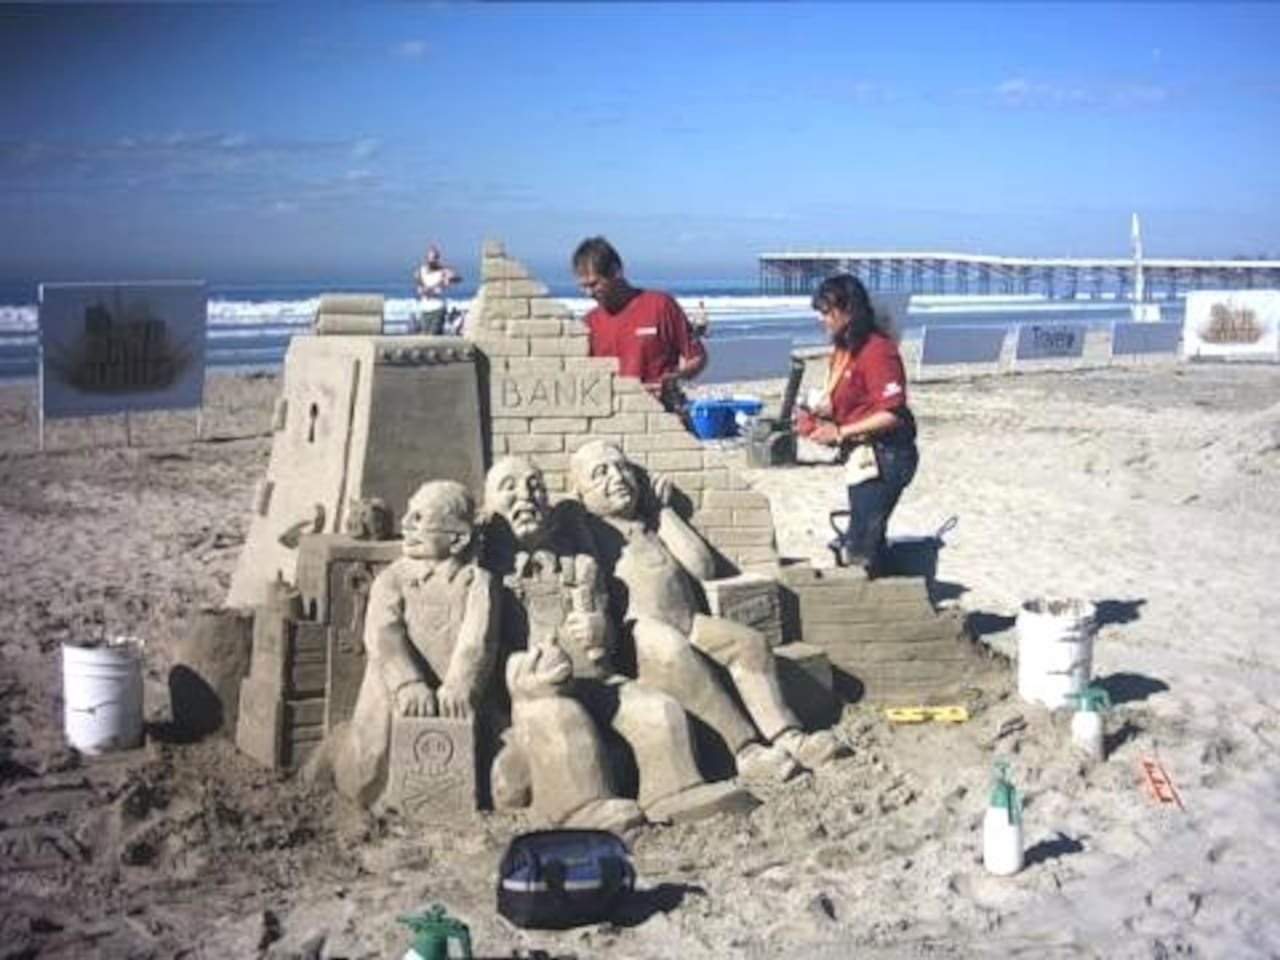 Sand Castle Competition Nearby